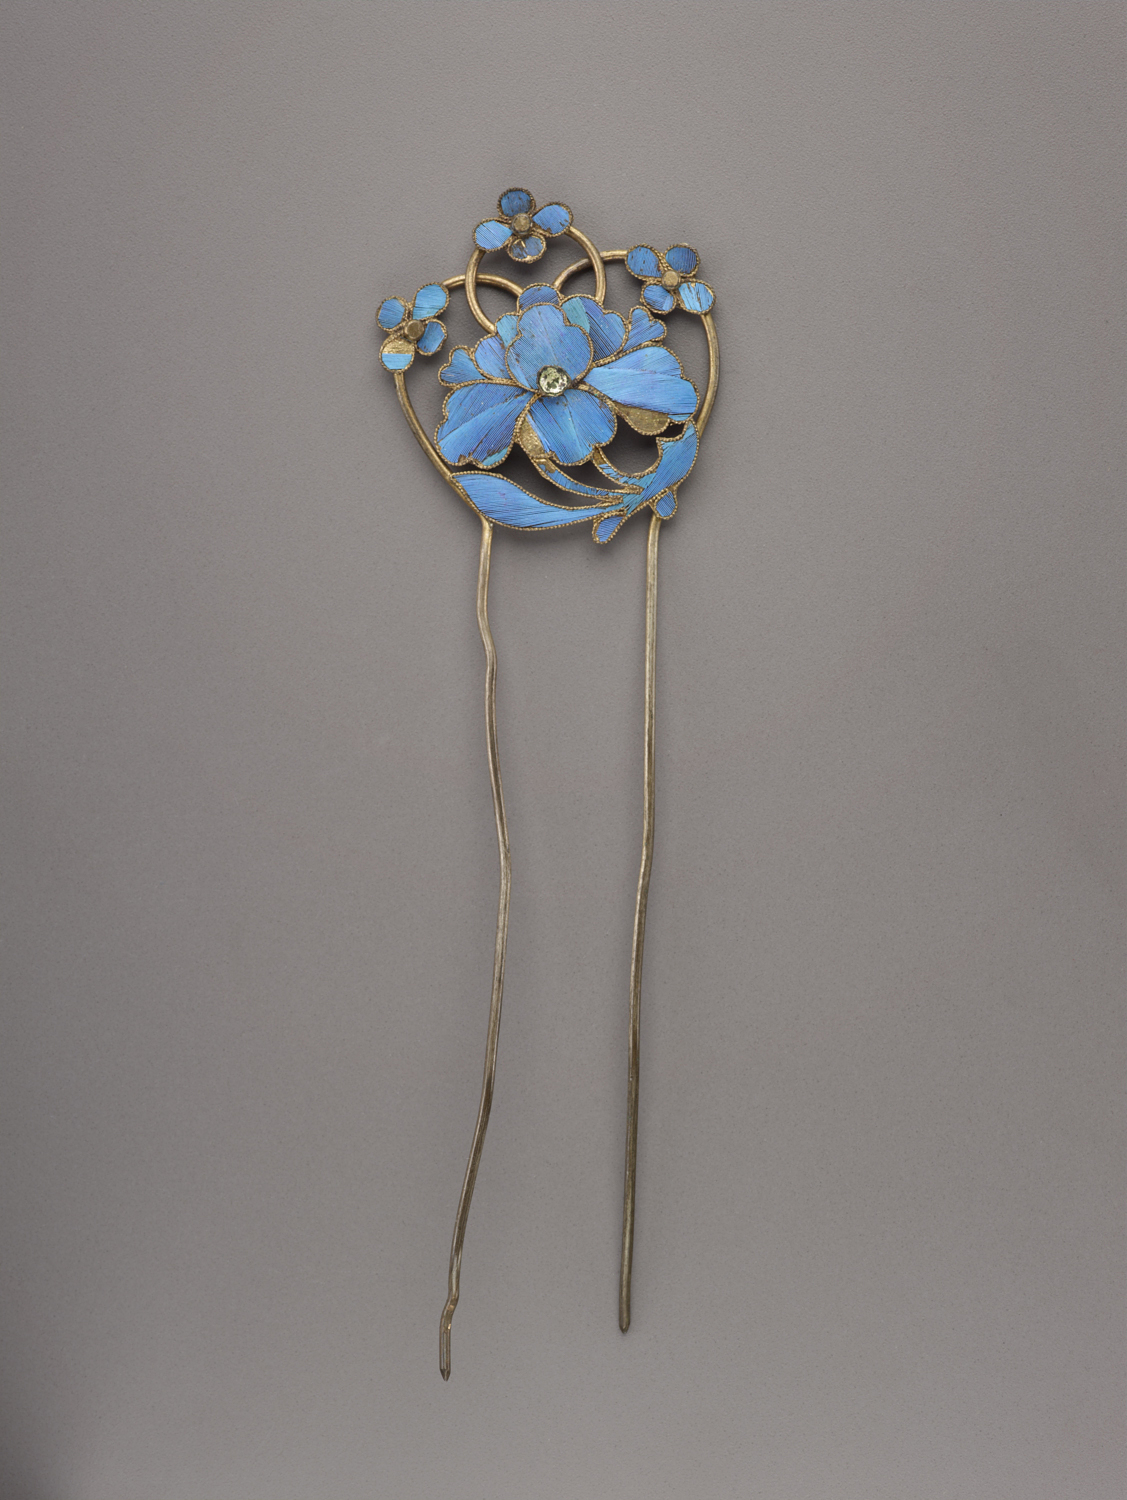 Double-prong kingfisher feather hairpin with floral motif.